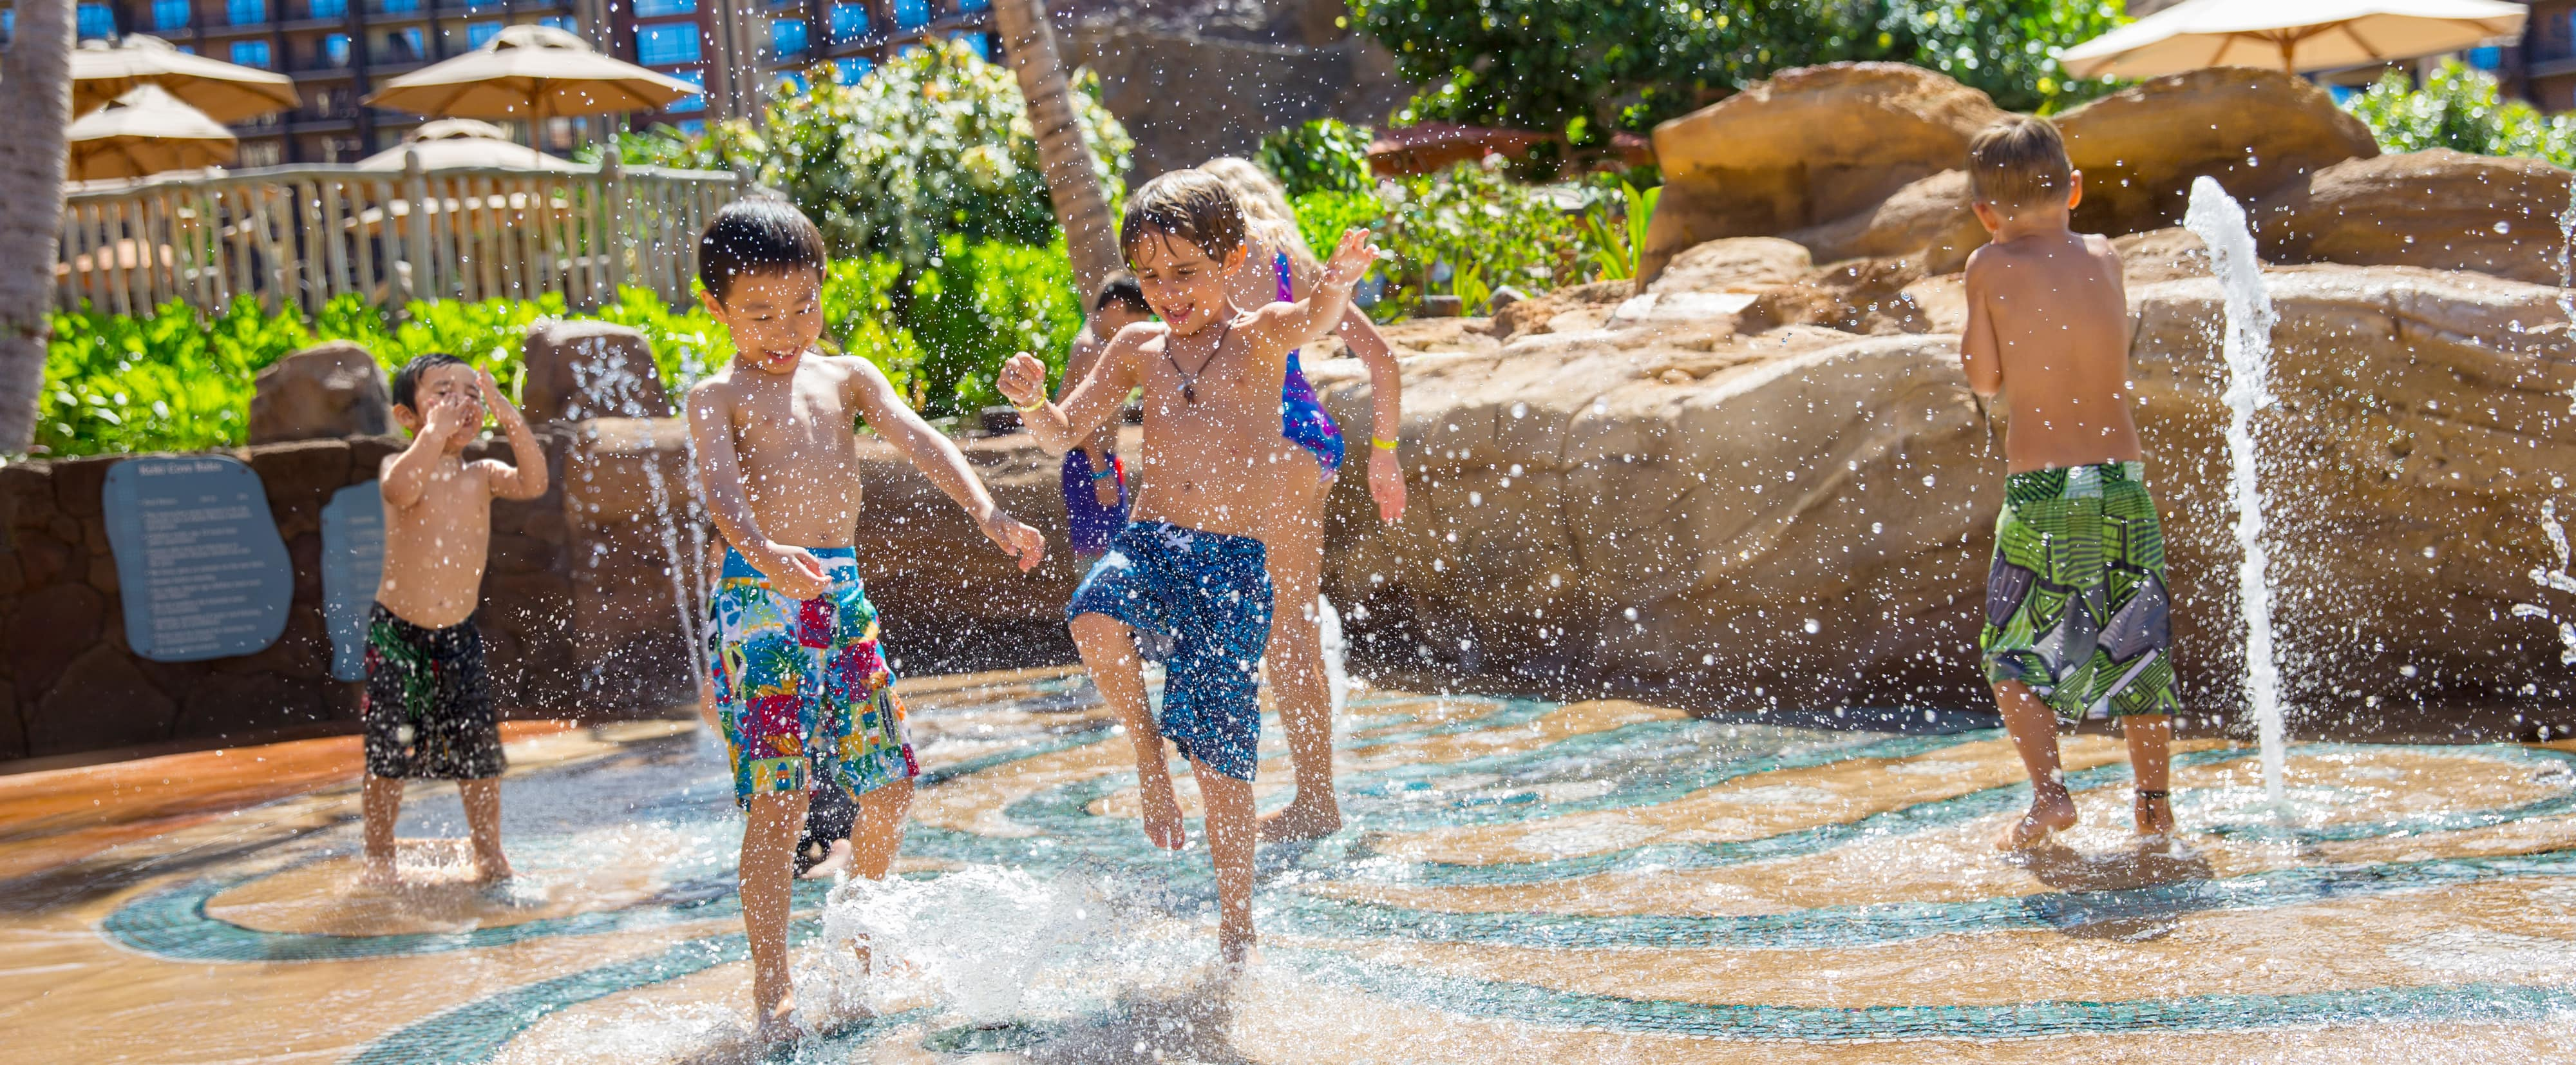 Two small boys in swim shorts frolic in a paved area with squirting water jets while 4 more children play